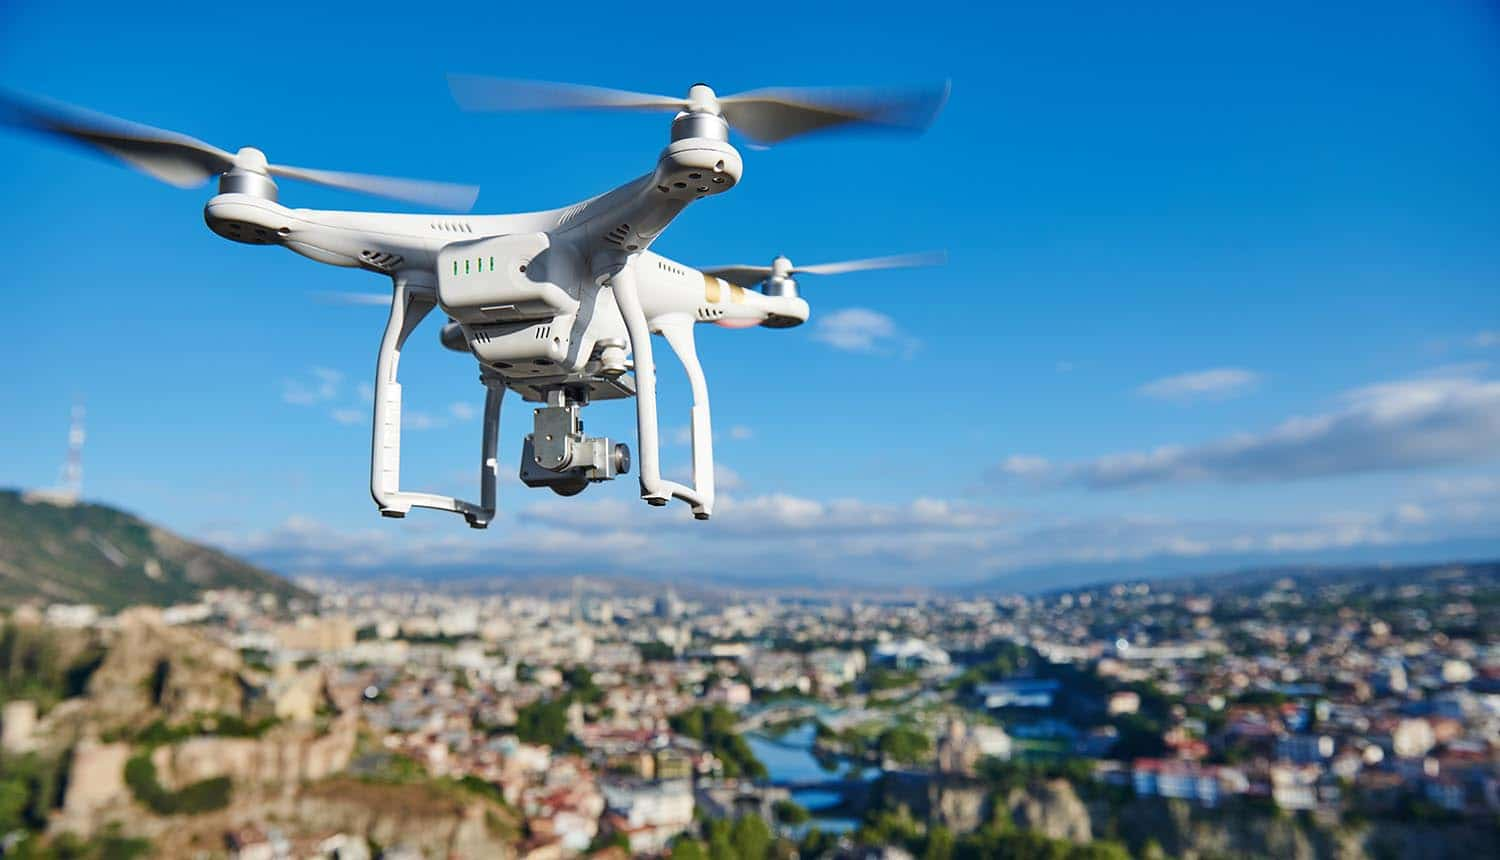 BINUS University Research on Using Drone for First Aid in Emergency Situations